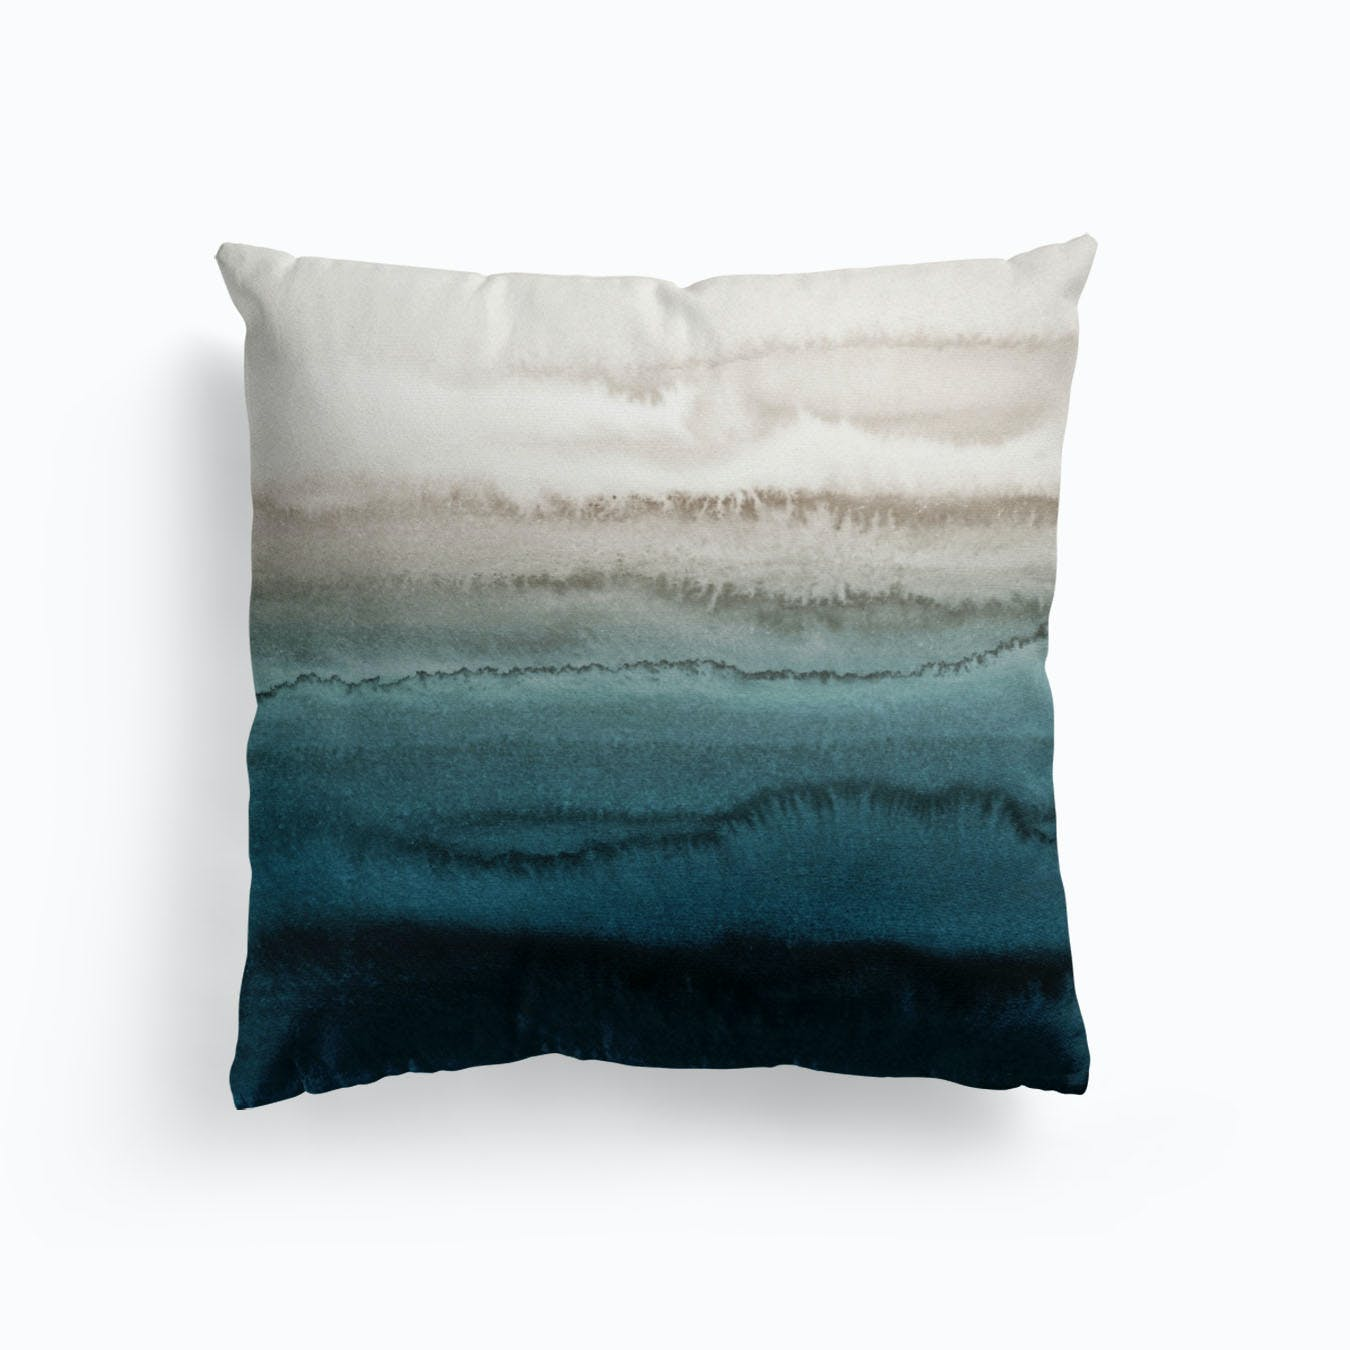 Teal Pillow Cover, Teal White Pillow